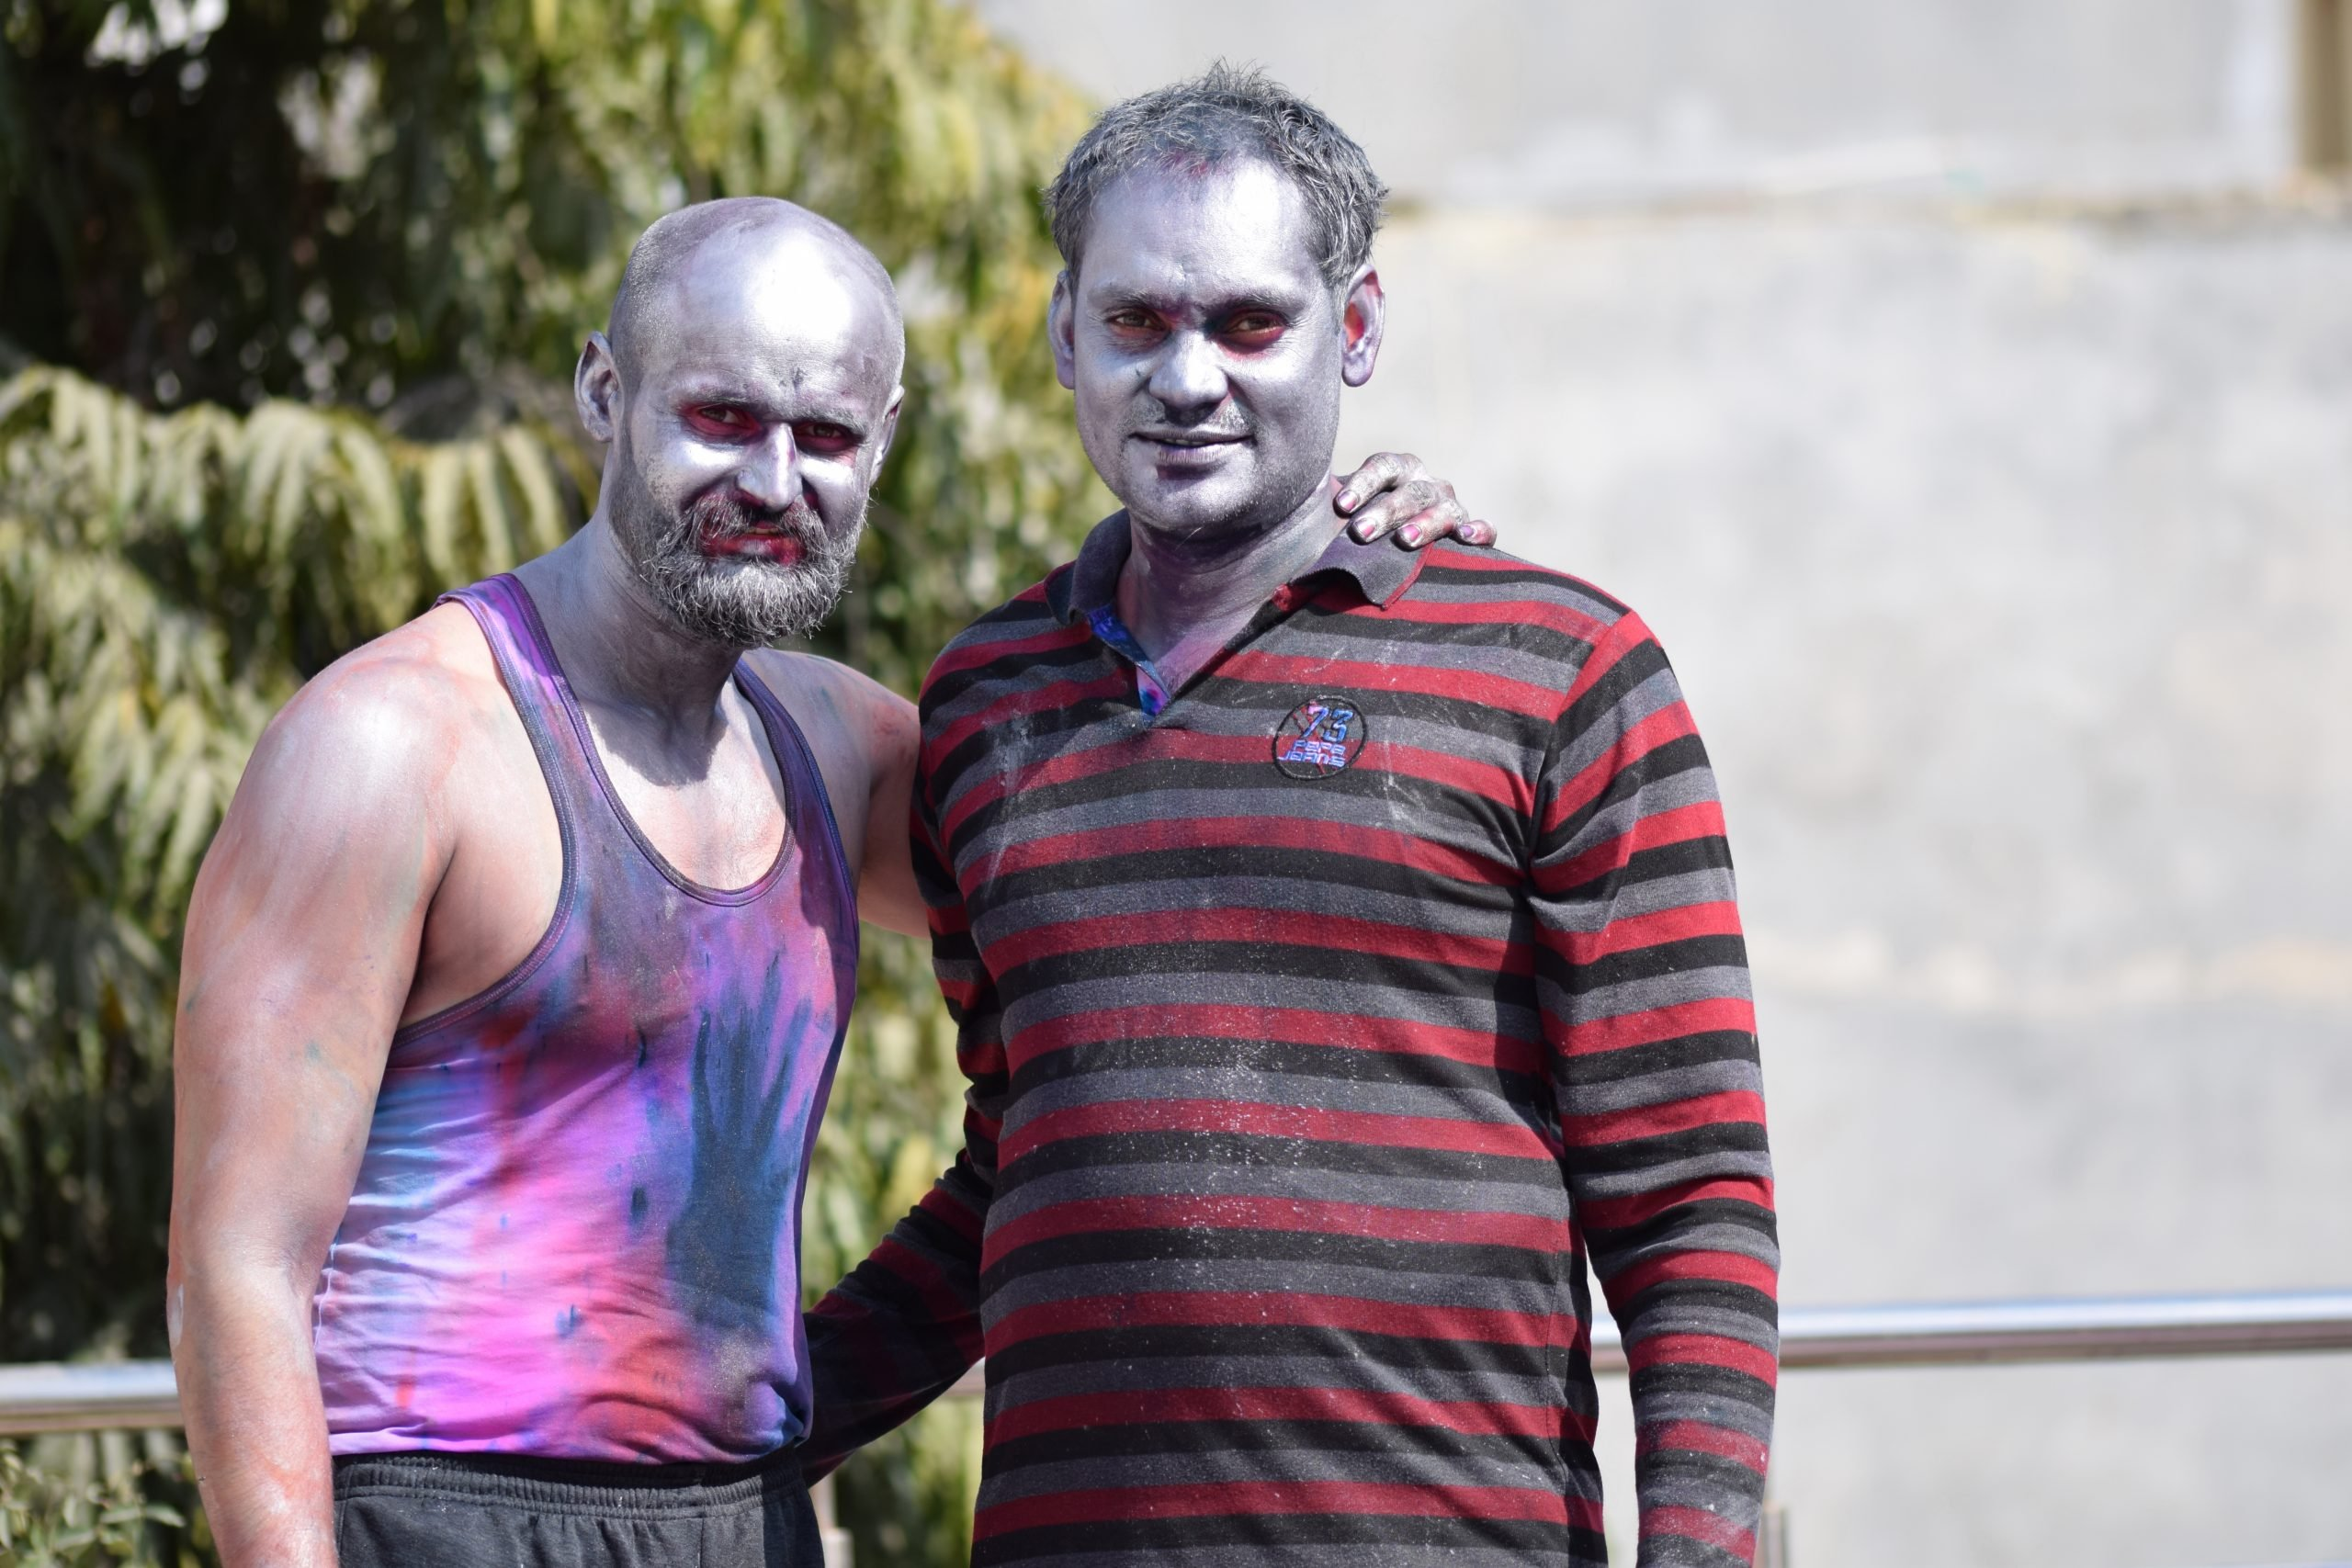 two young adults on holi